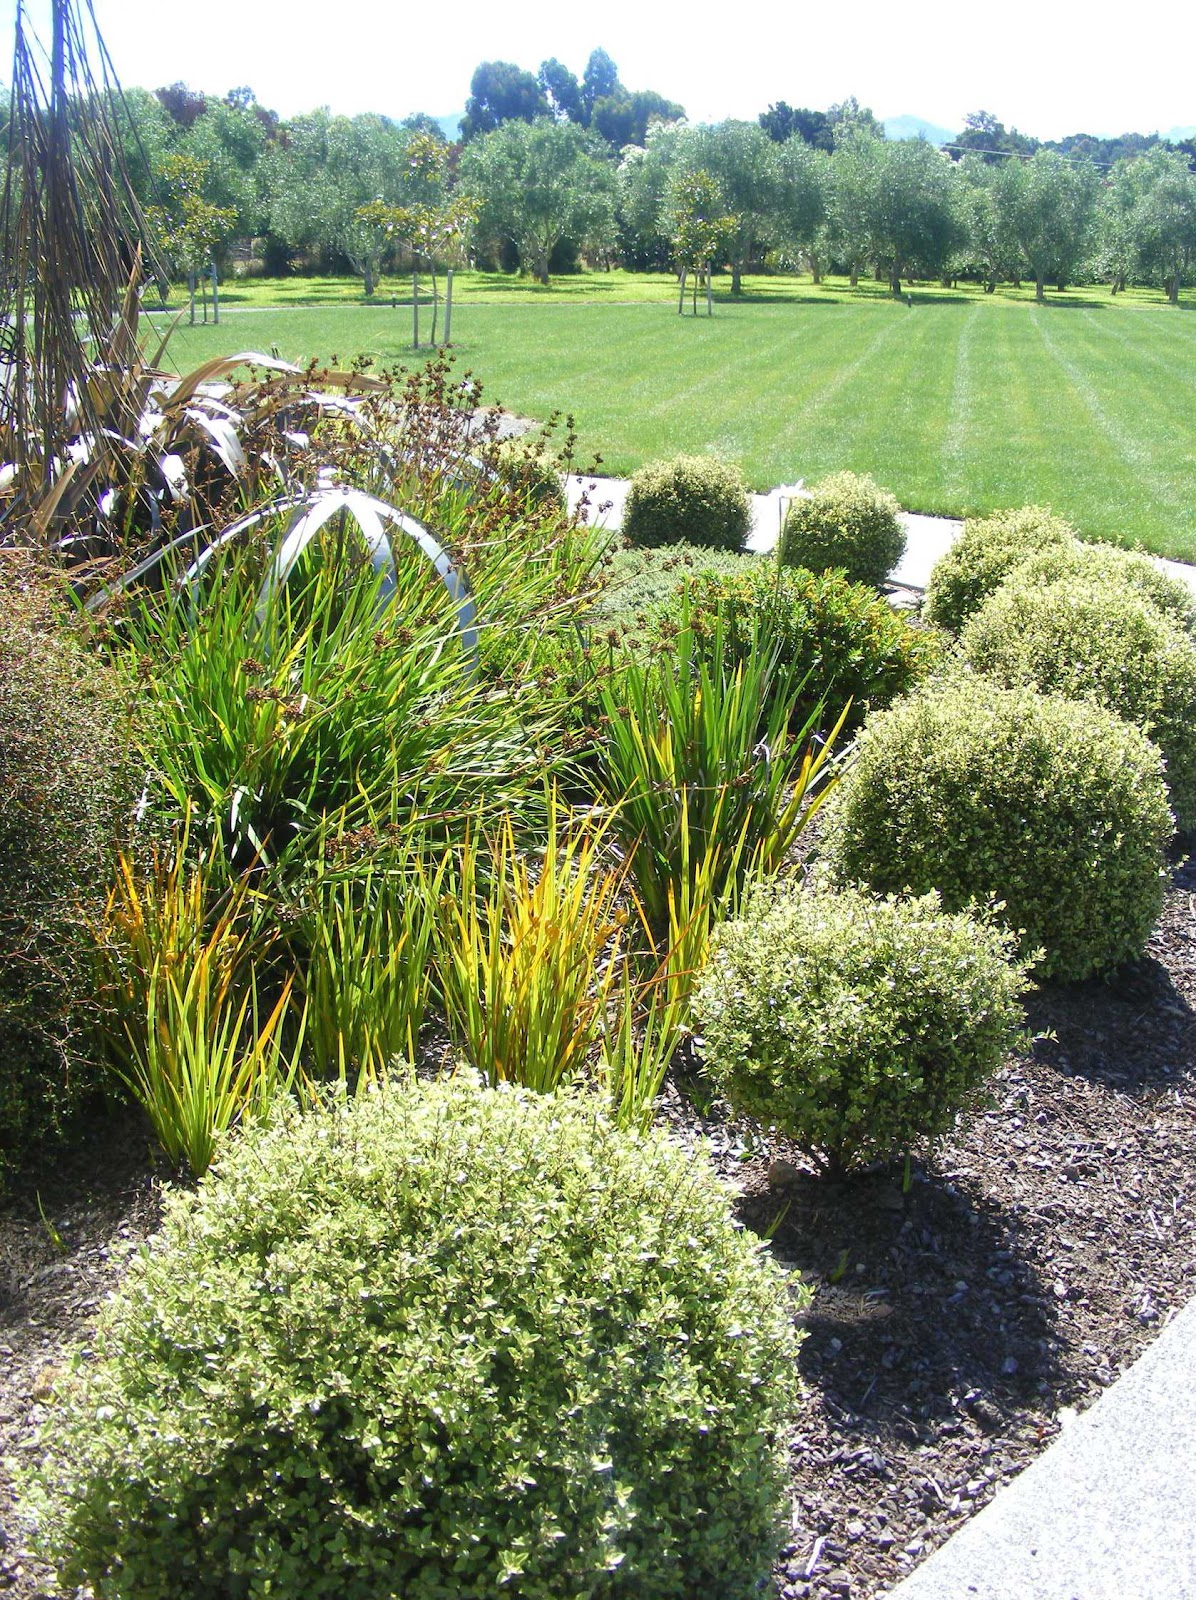 Rachel callaghan landscape architect nz upper plain for Native garden designs nz